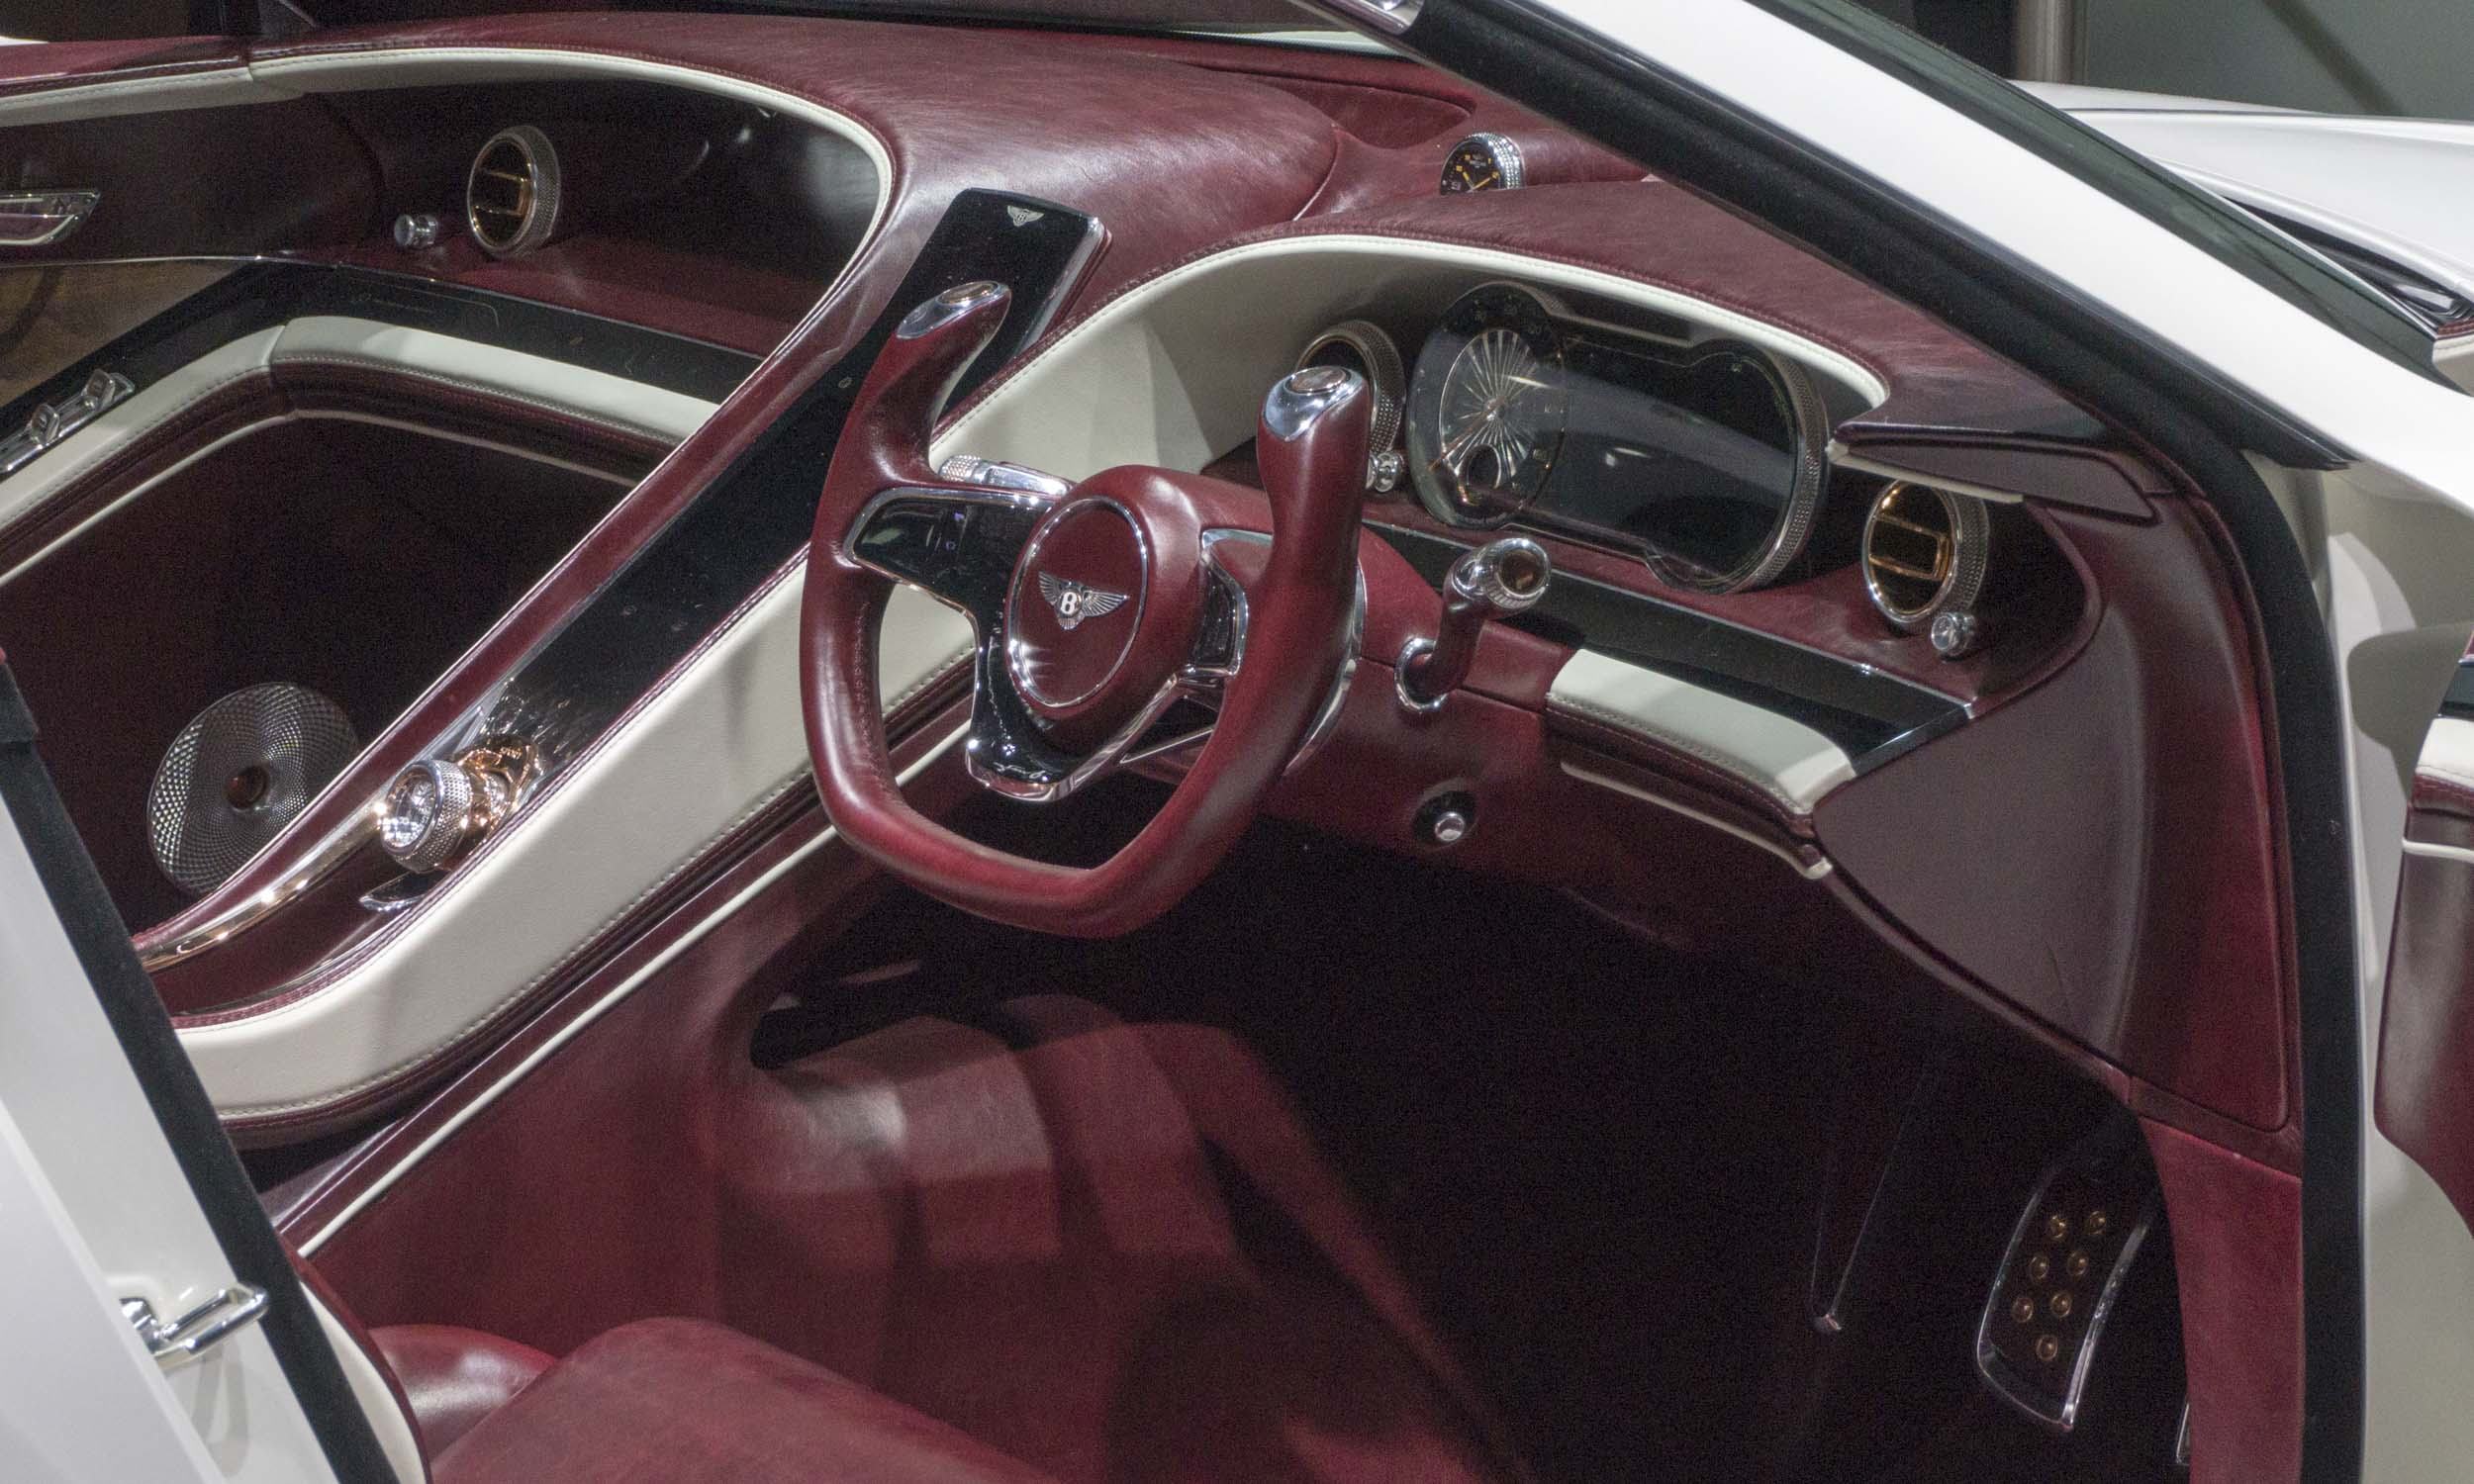 2018 bentley exp 12 speed 6e price. wonderful exp perry stern automotive content experience bentley exp 12 speed 6e concept on 2018 bentley exp speed price